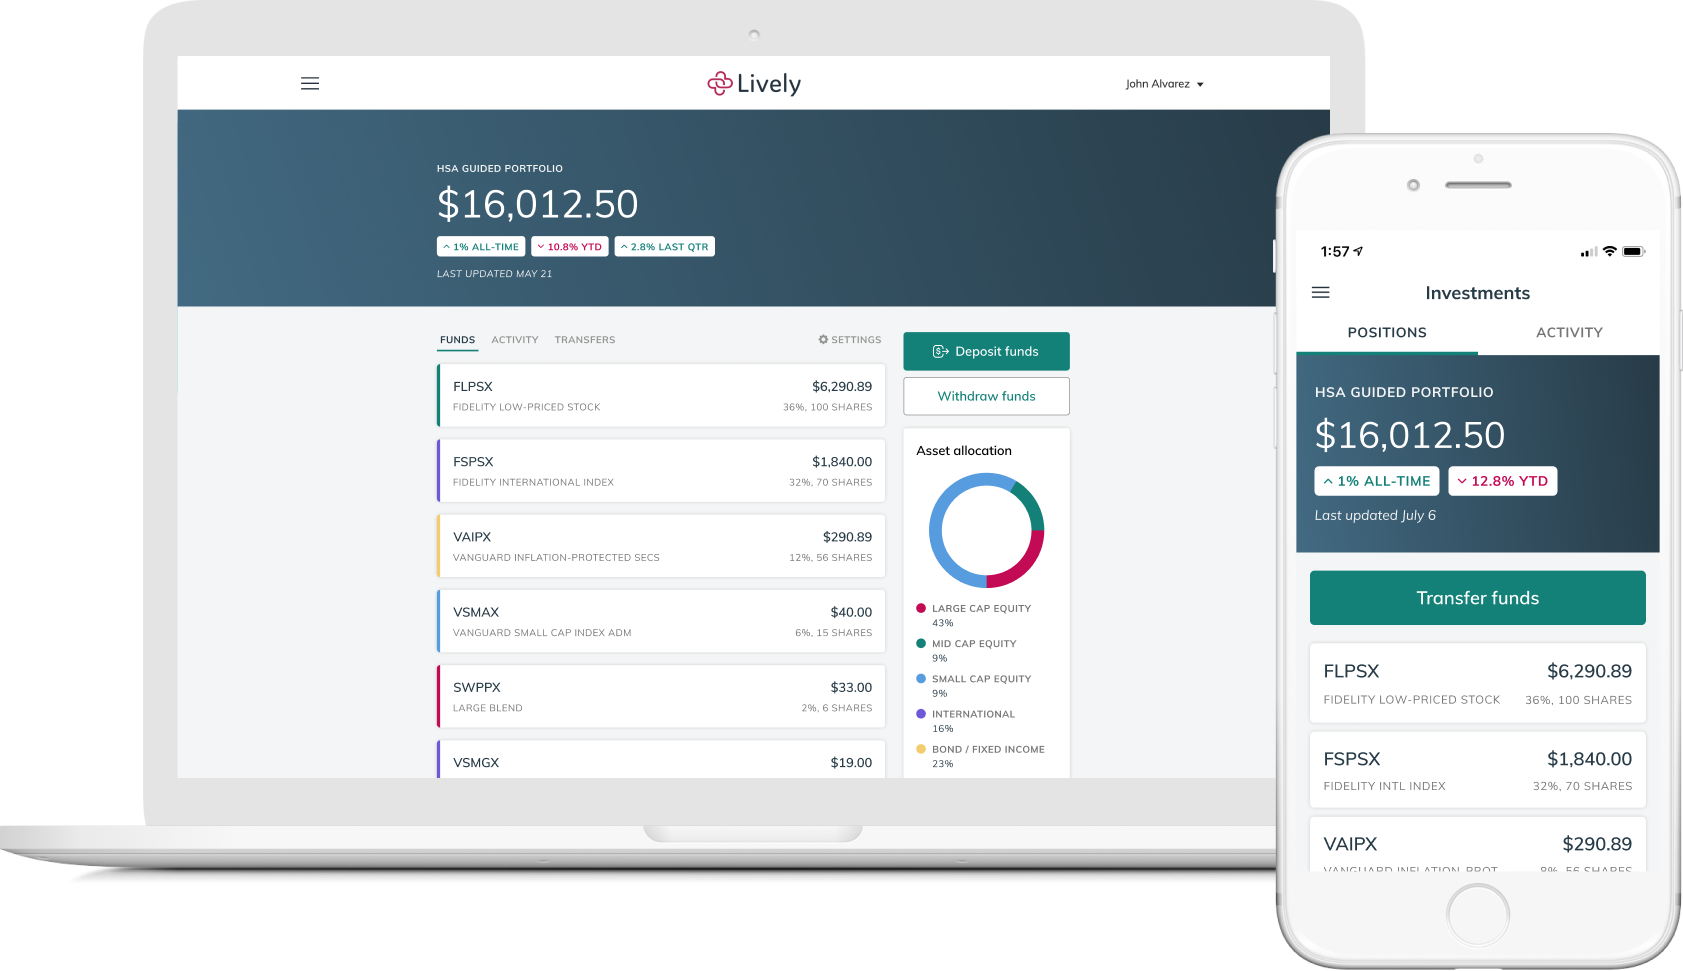 Lively is building the modern health savings account that puts consumers first